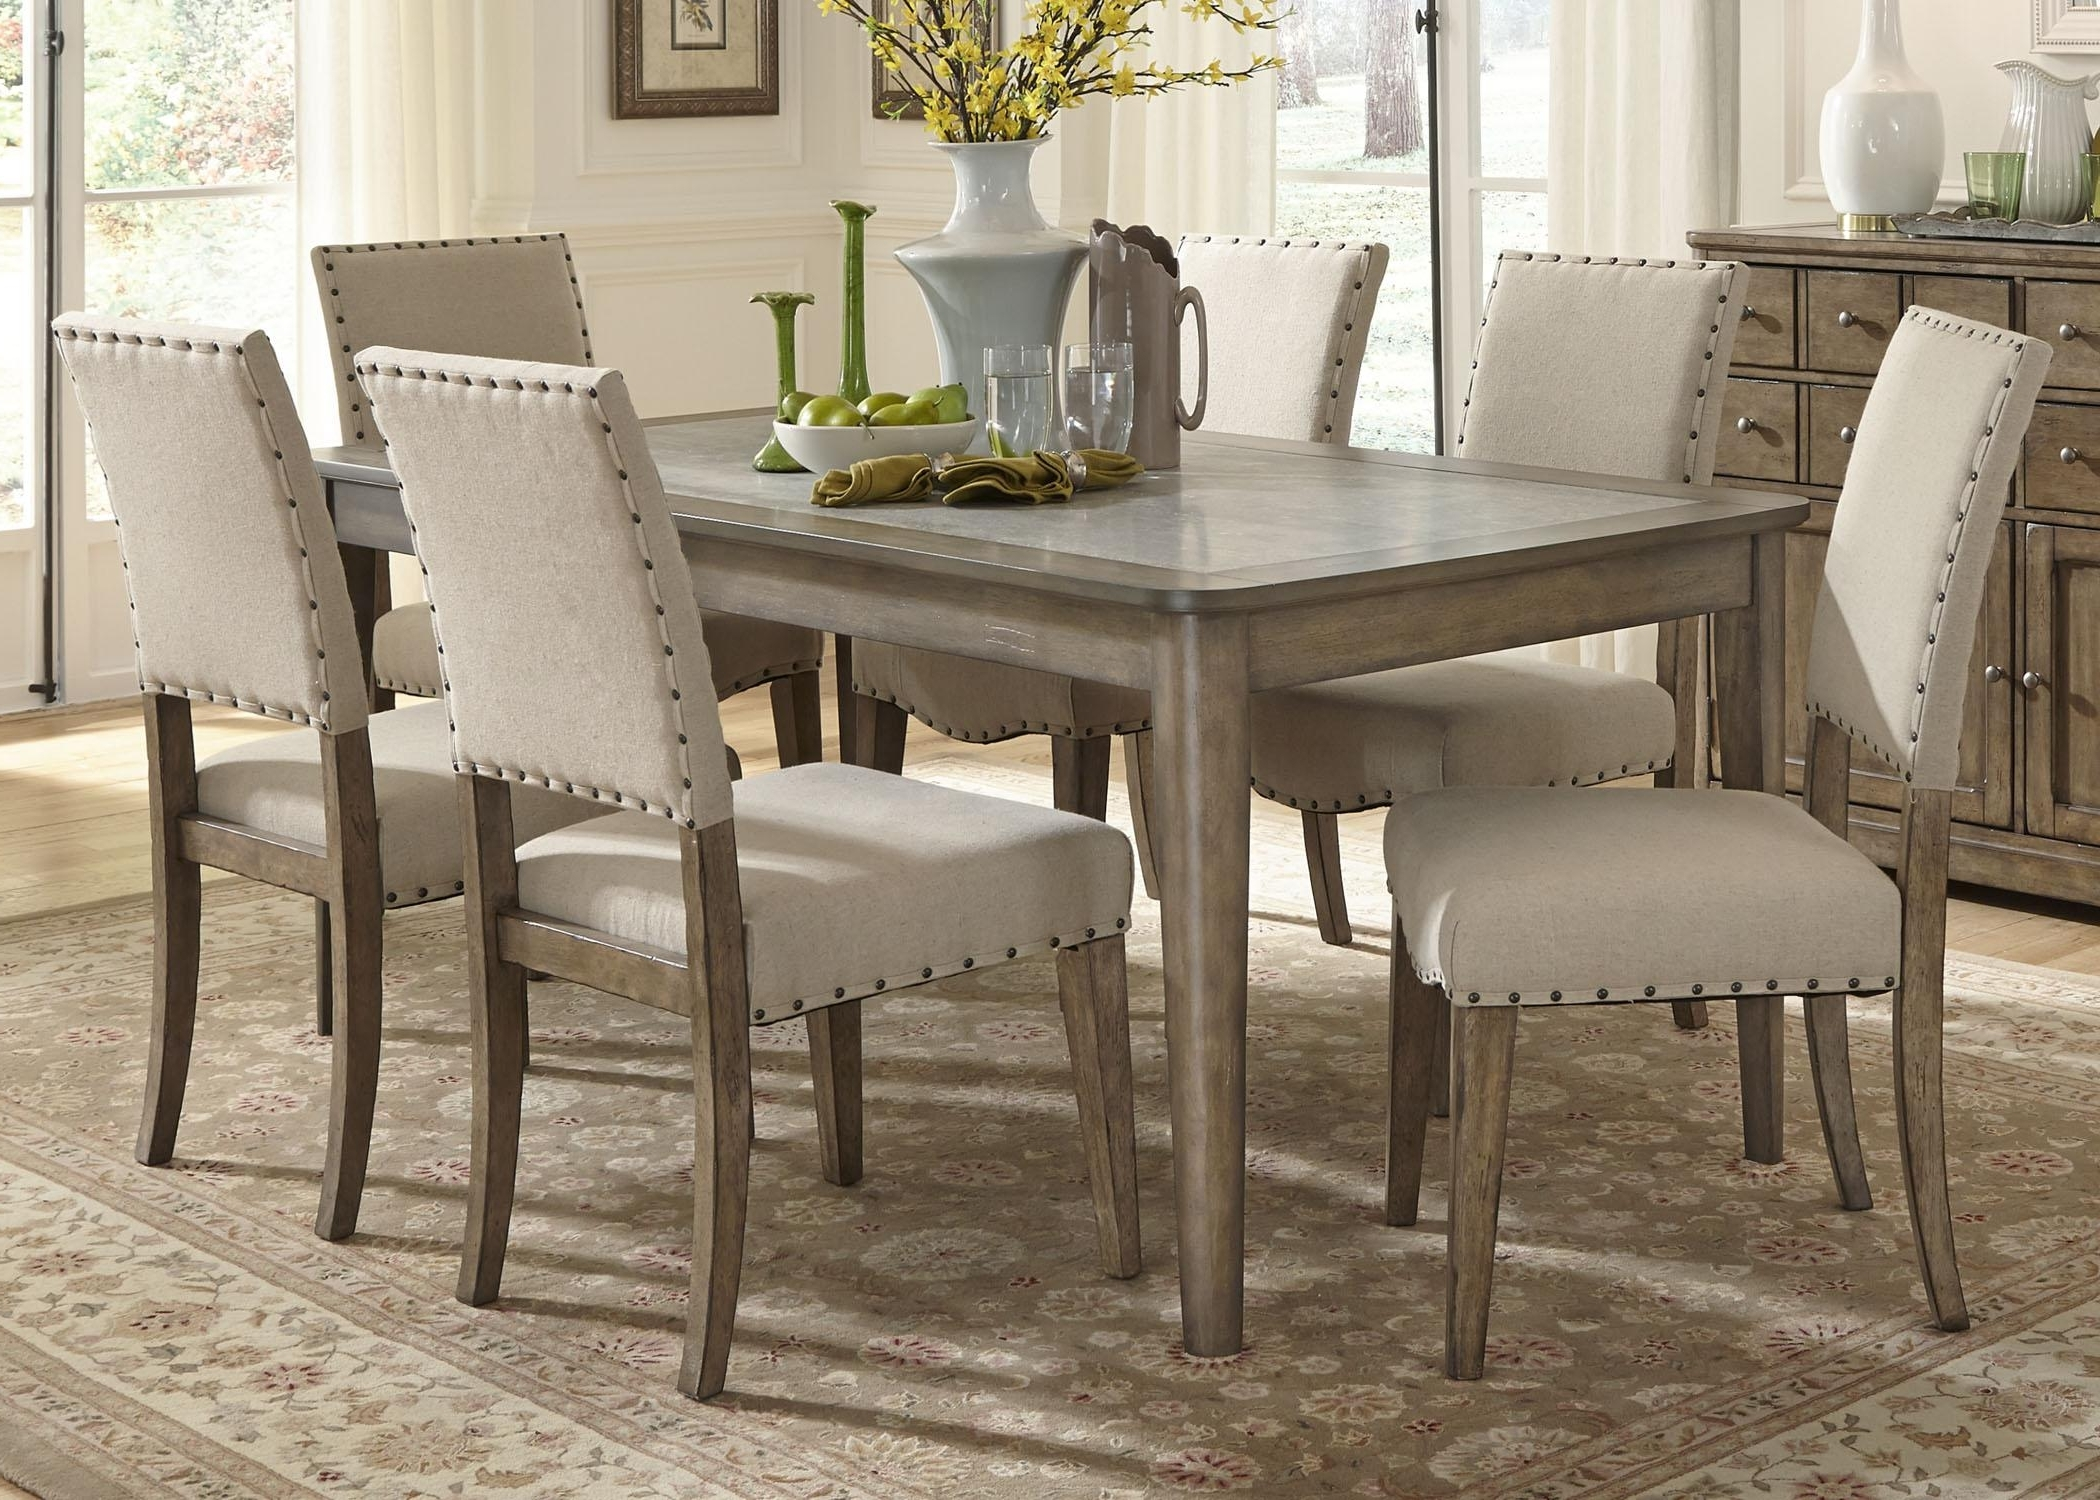 Dining Tables Sets Regarding Well Known Liberty Furniture Weatherford Casual Rustic 7 Piece Dining Table And (Gallery 17 of 25)